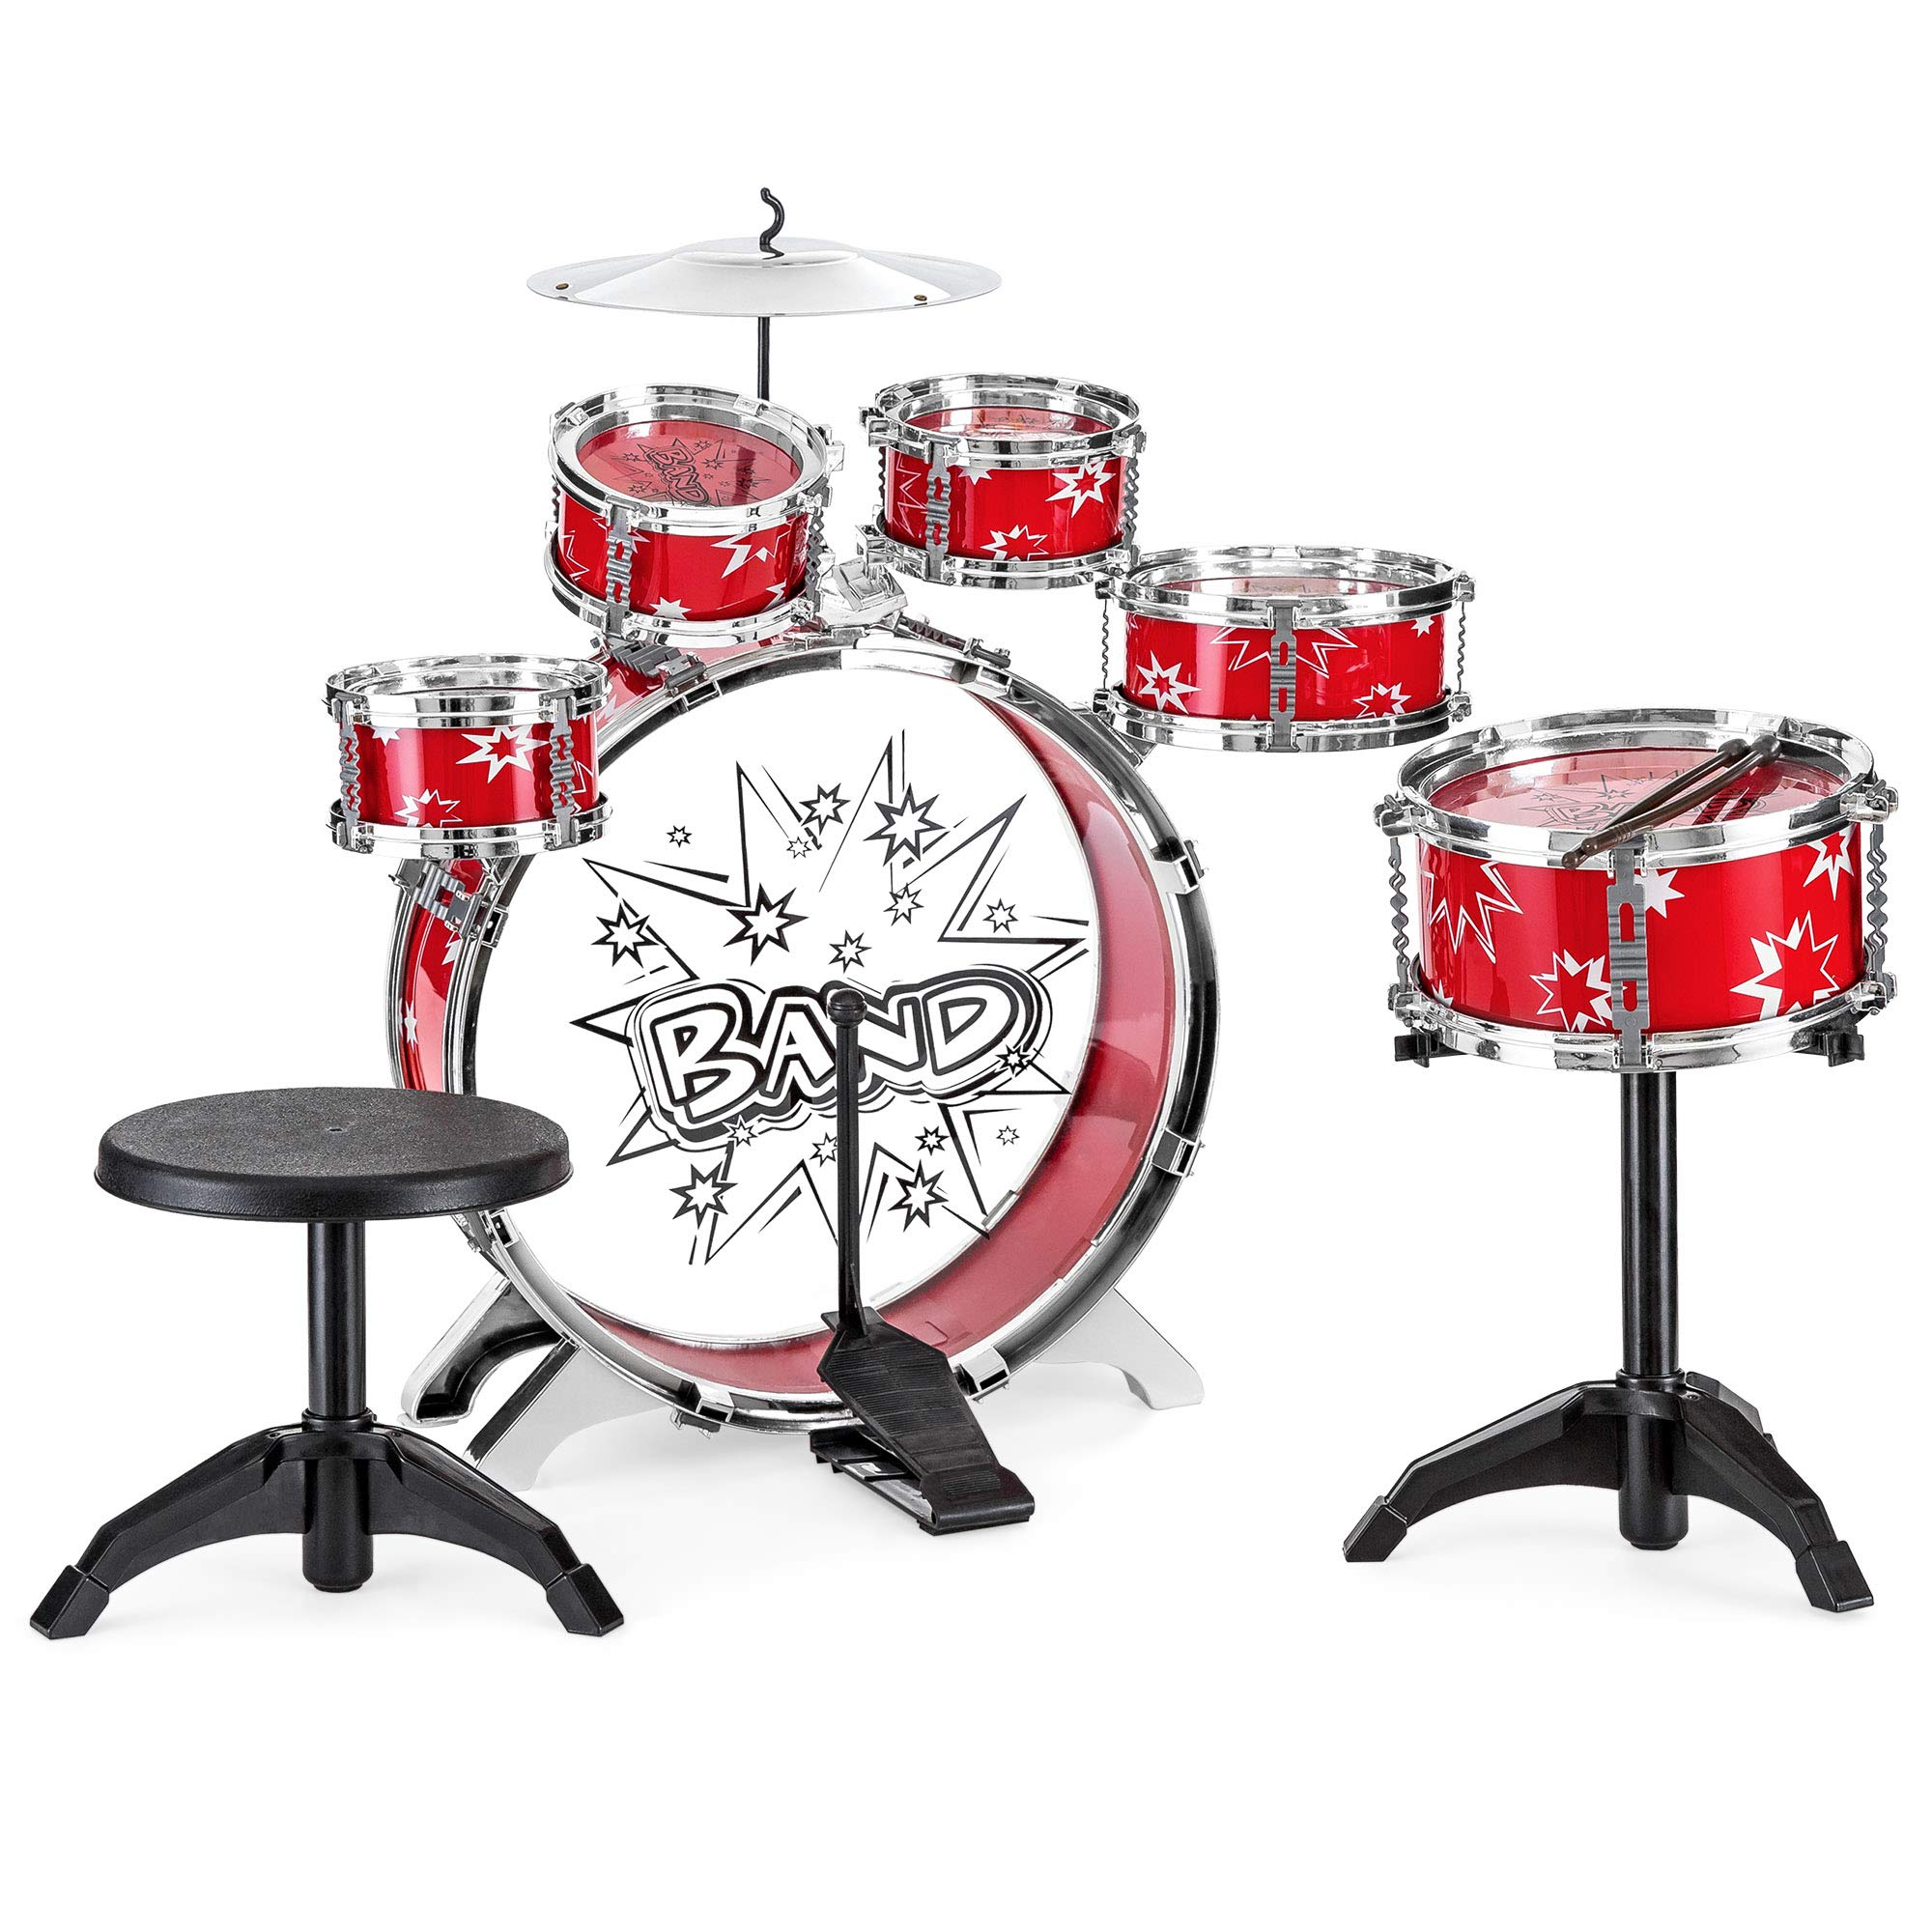 Best Choice Products 11-Piece Kids Starter Drum Set with Bass, Tom Drums, Snare, Cymbal, Stool, Red